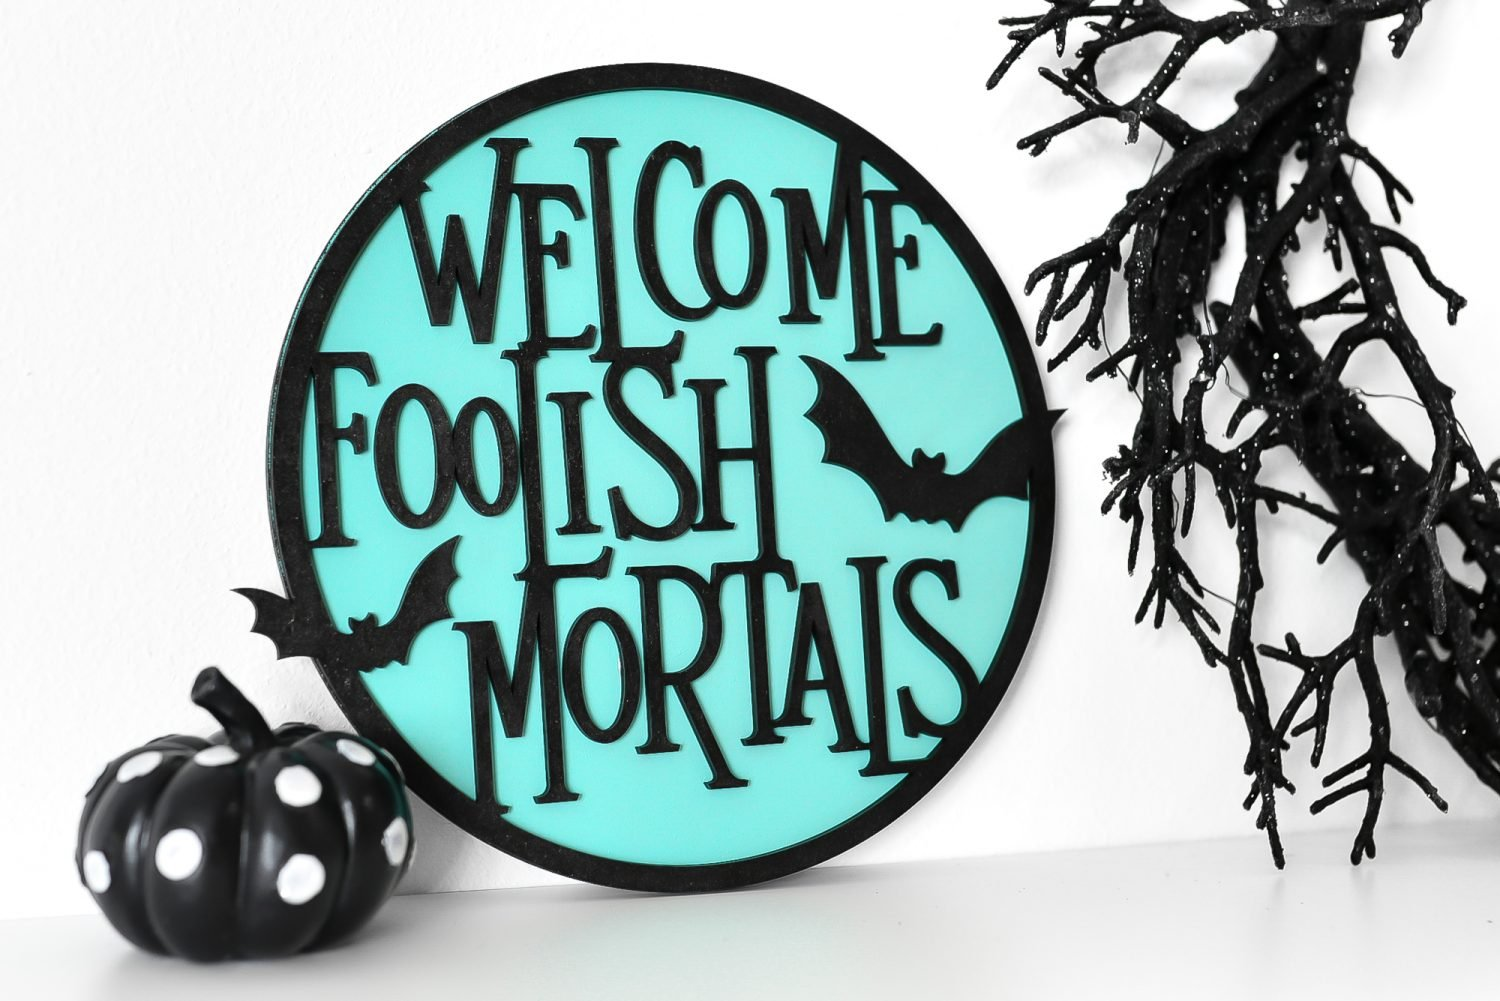 Welcome Foolish Mortals sign on a shelf with Halloween decor